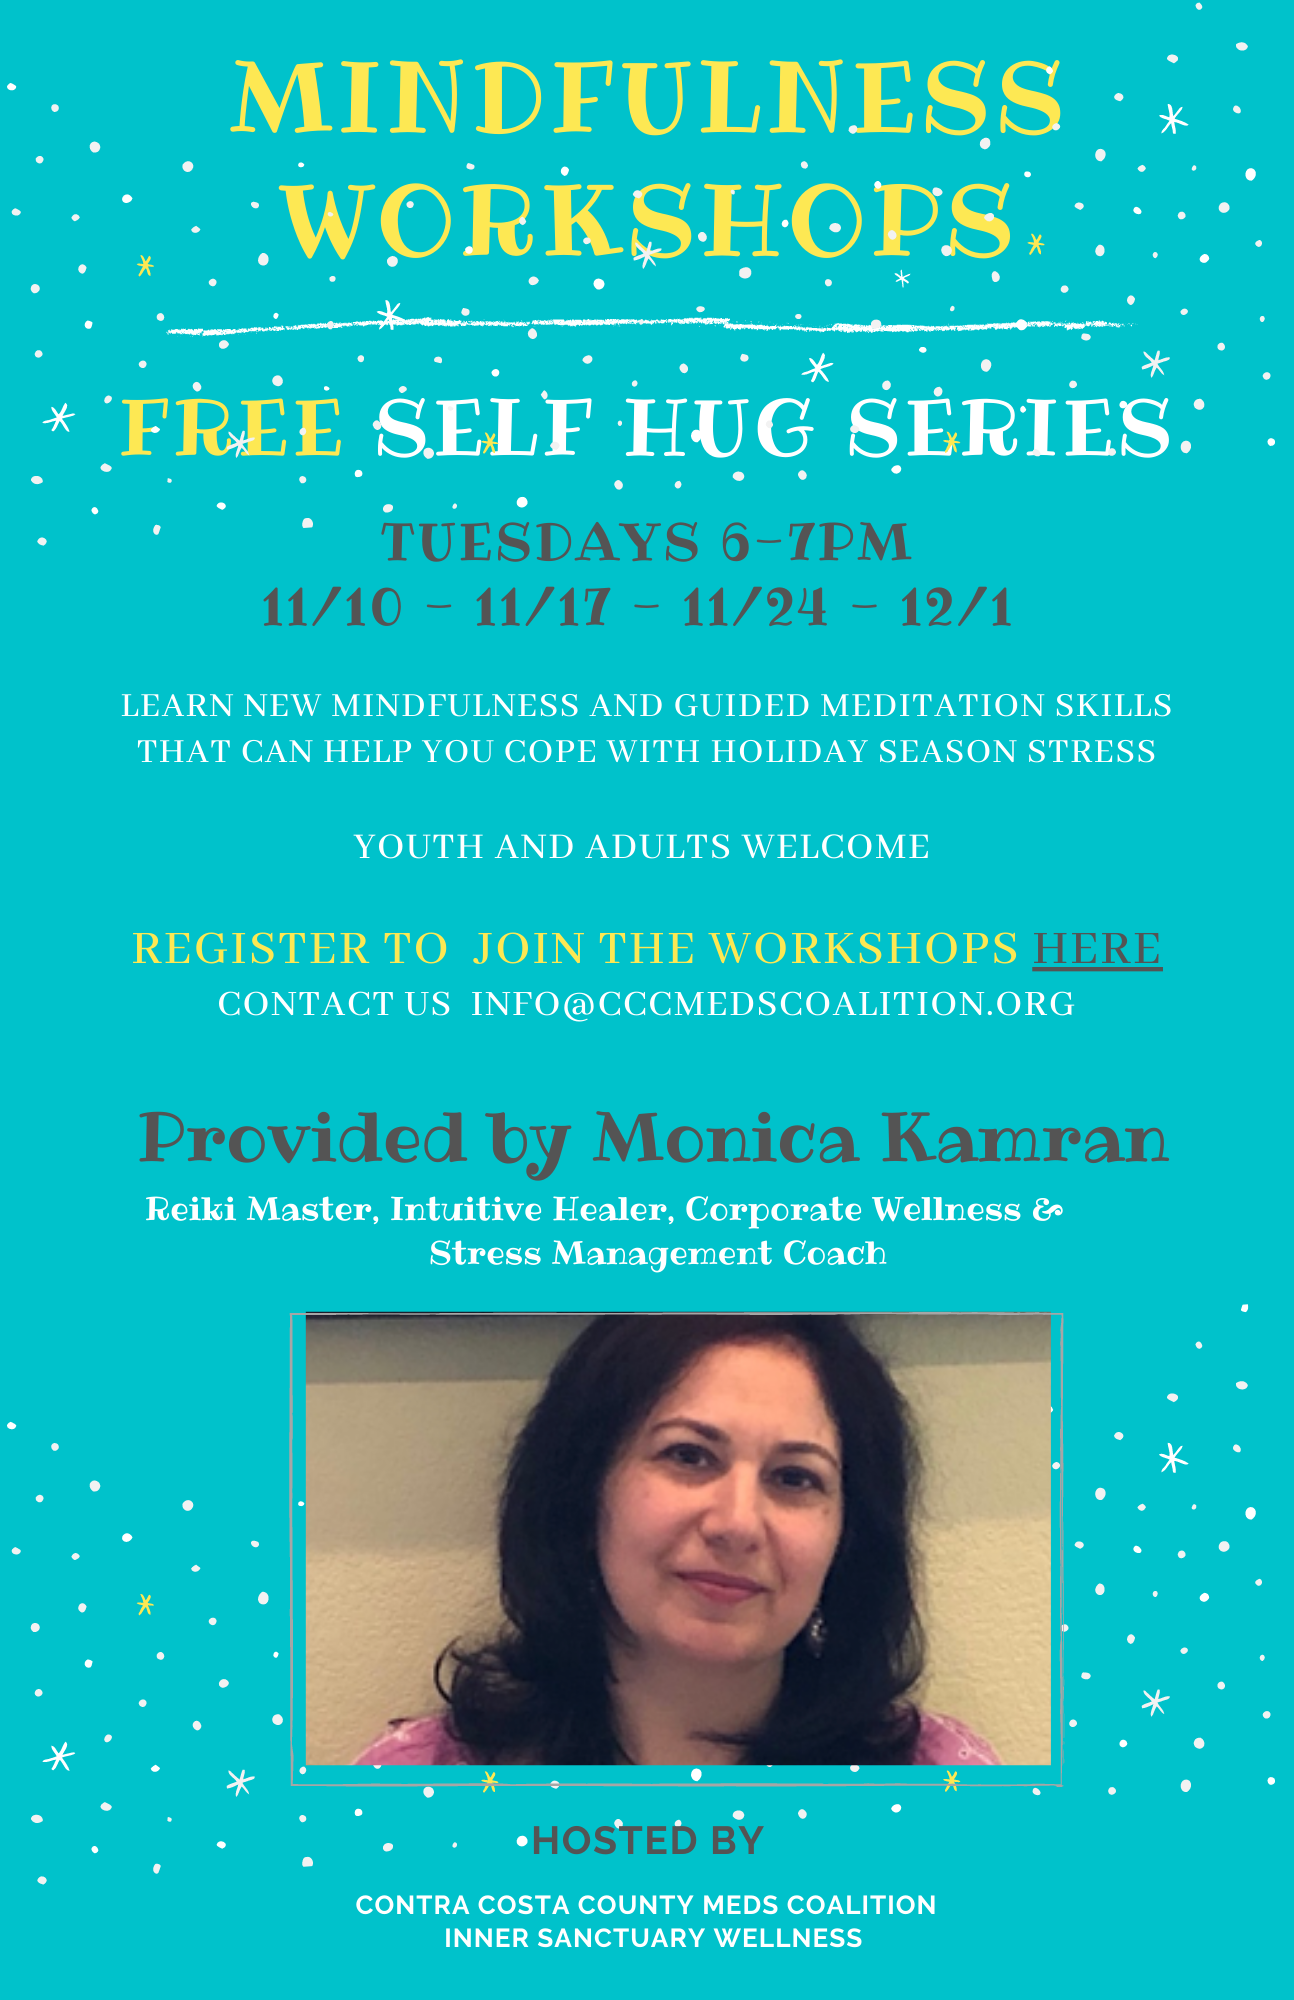 Self Hug Series for Contra Costa Meds Coalition